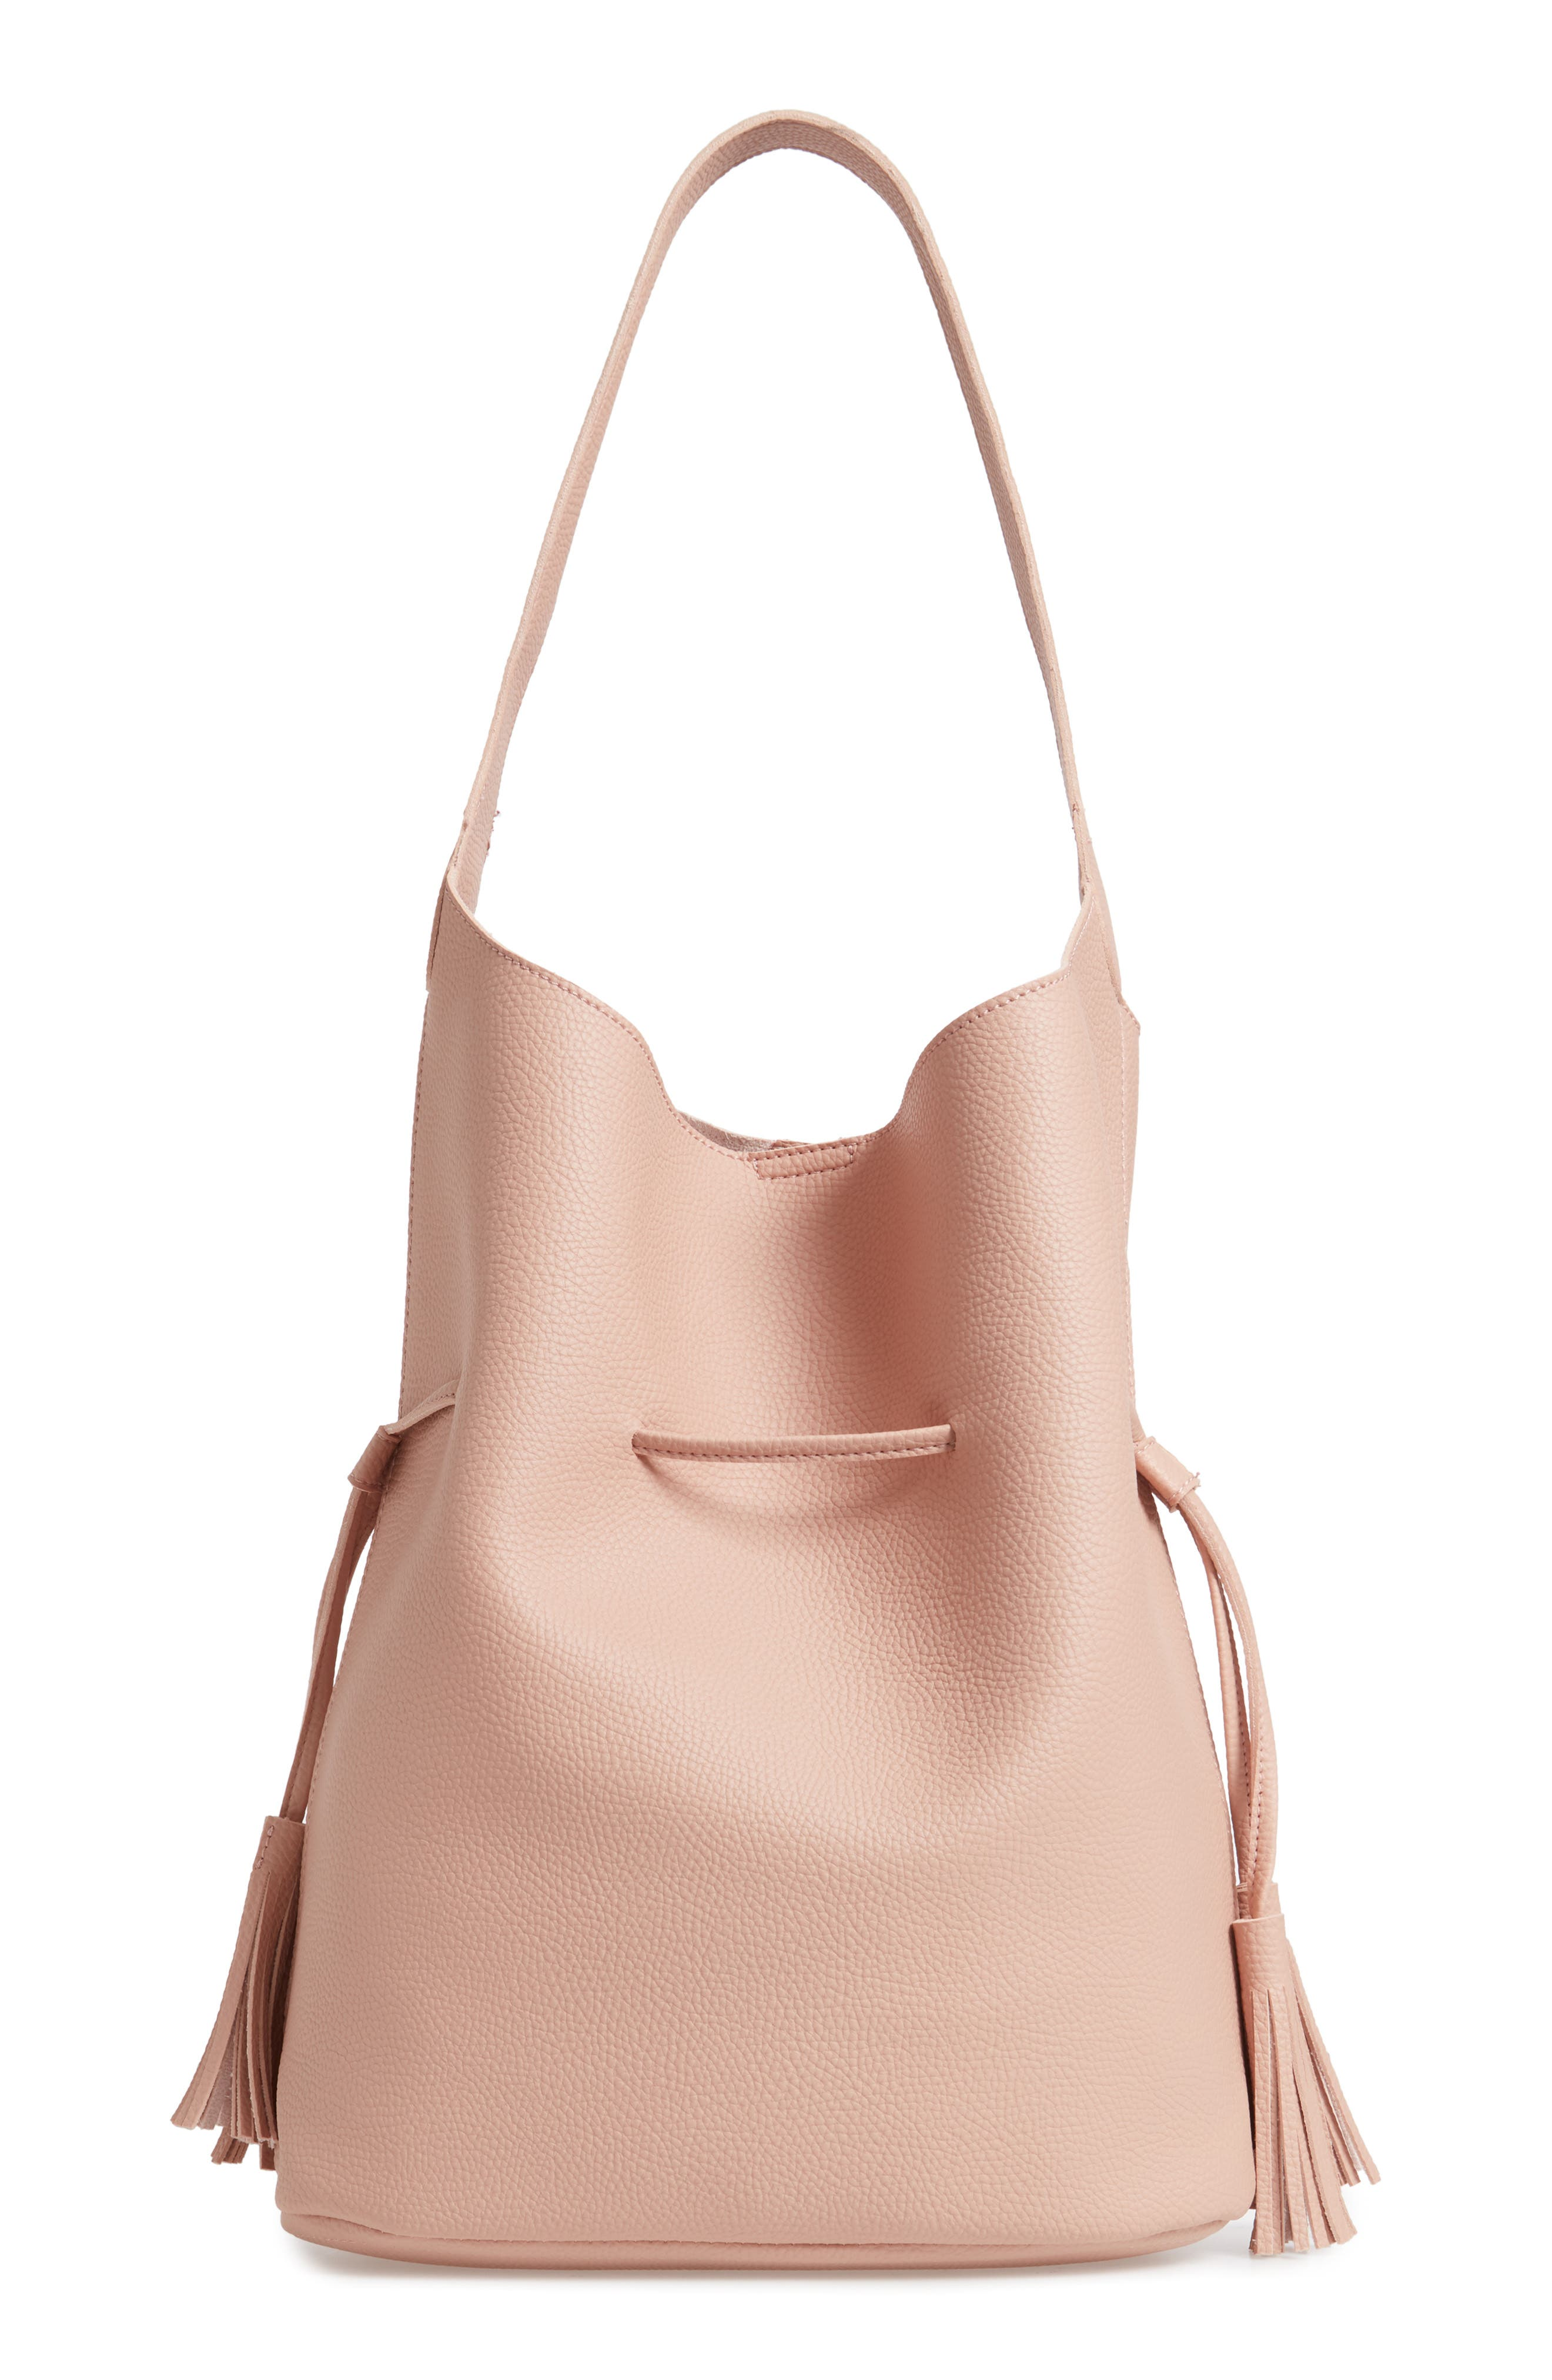 STREET LEVEL Drawstring Faux Leather Bucket Bag - Pink in Blush